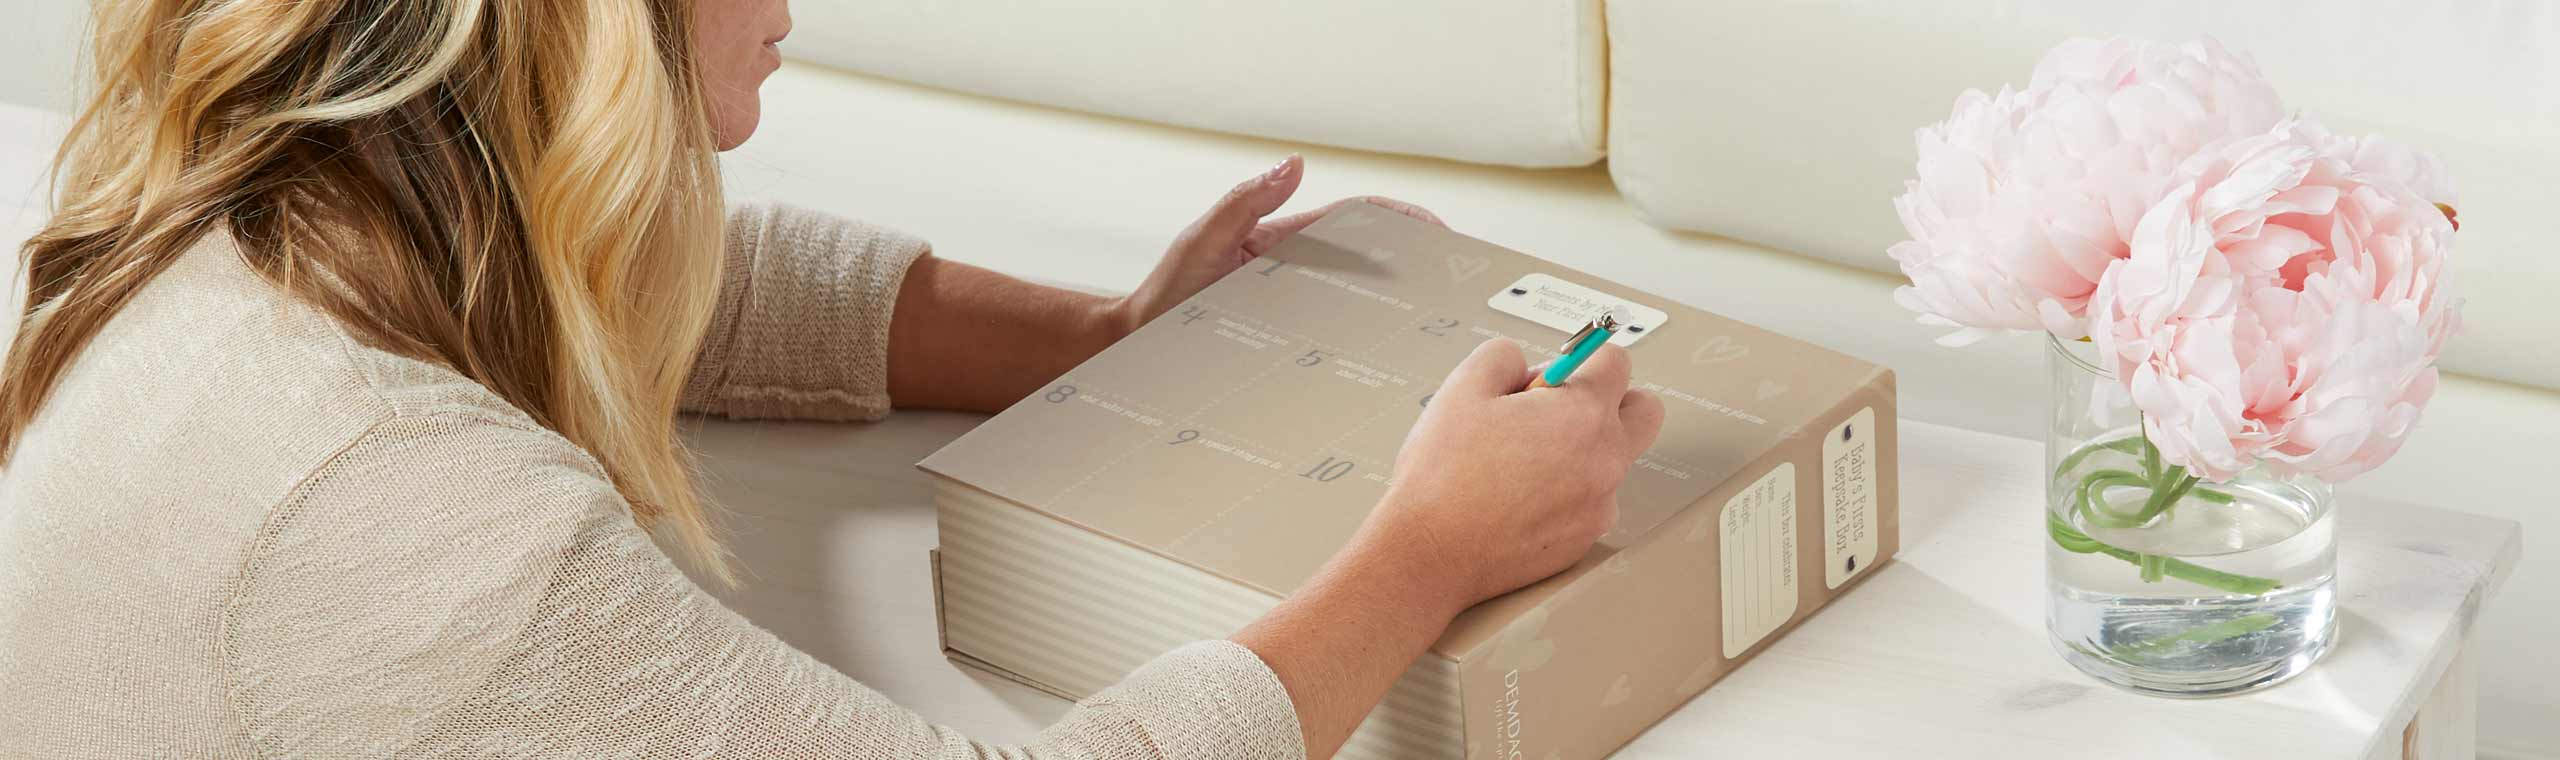 Young mom writing on keepsake journaling box in living room